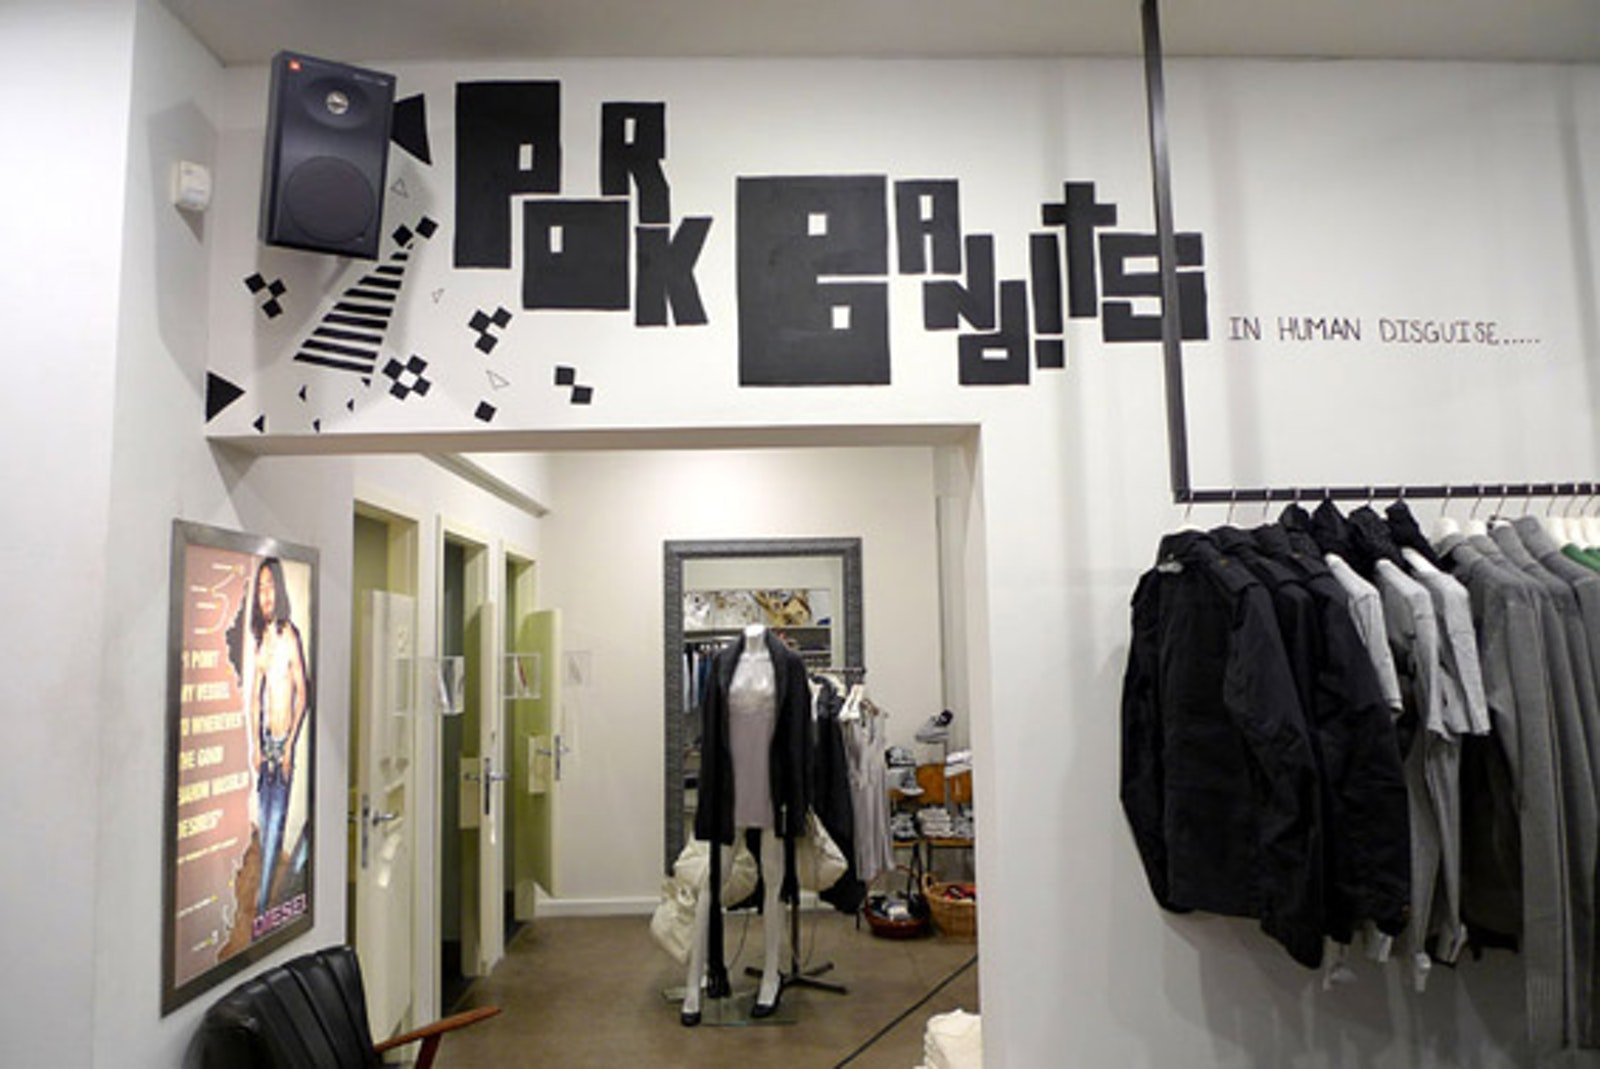 Bespoke murals at Diesel store in Aarhus by Ruth Crone Foster